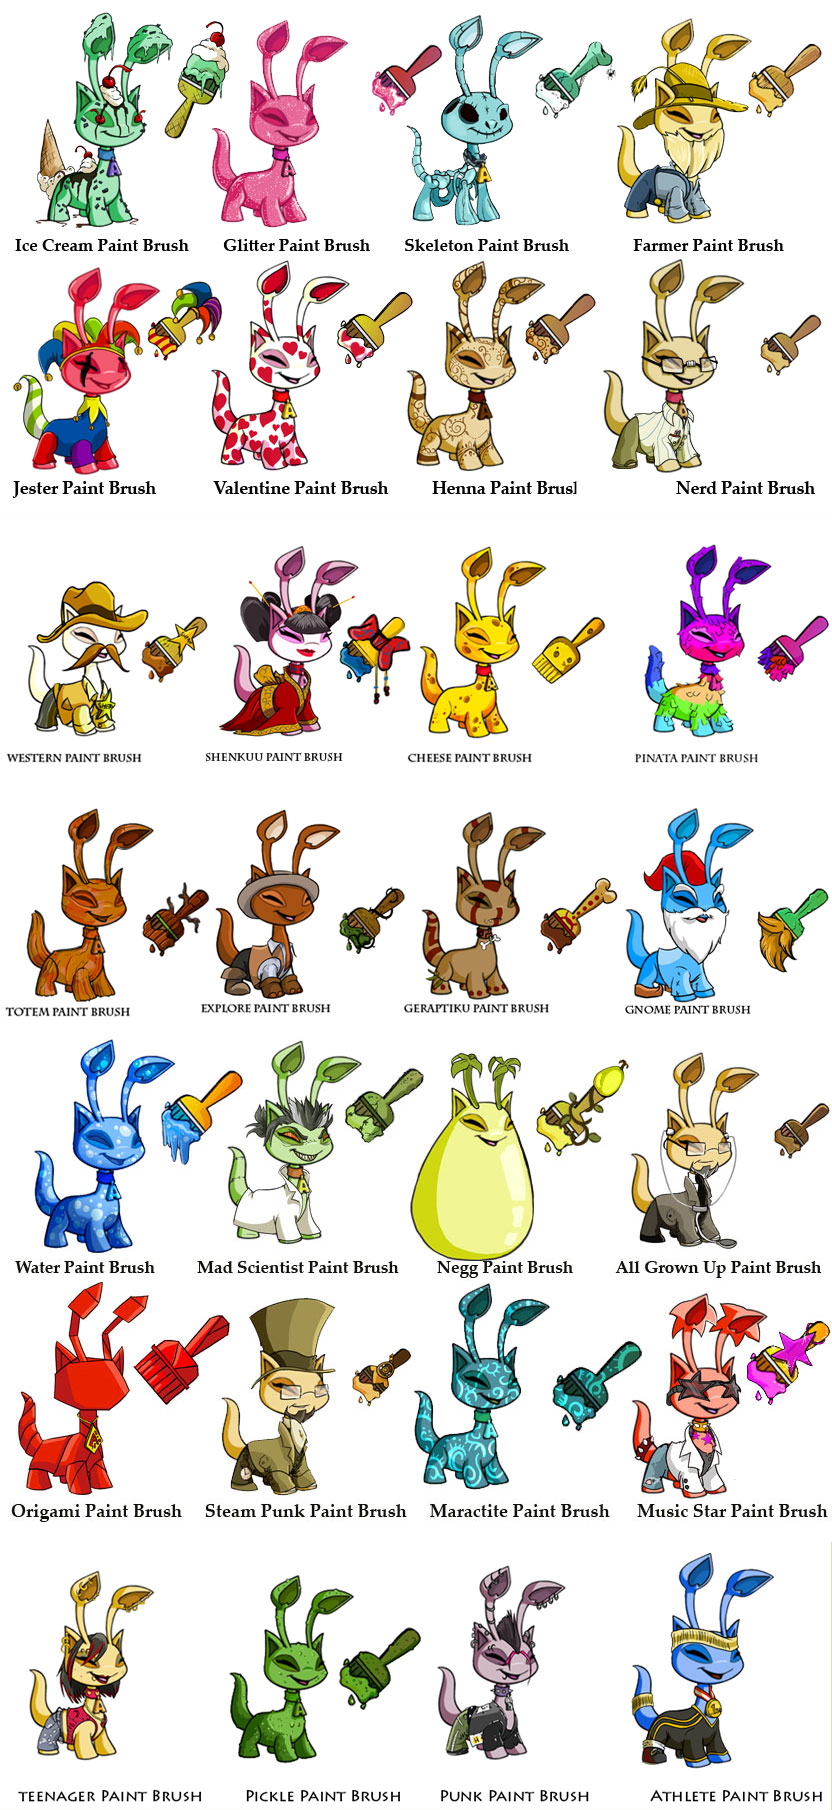 New Neopets Paint Brushes